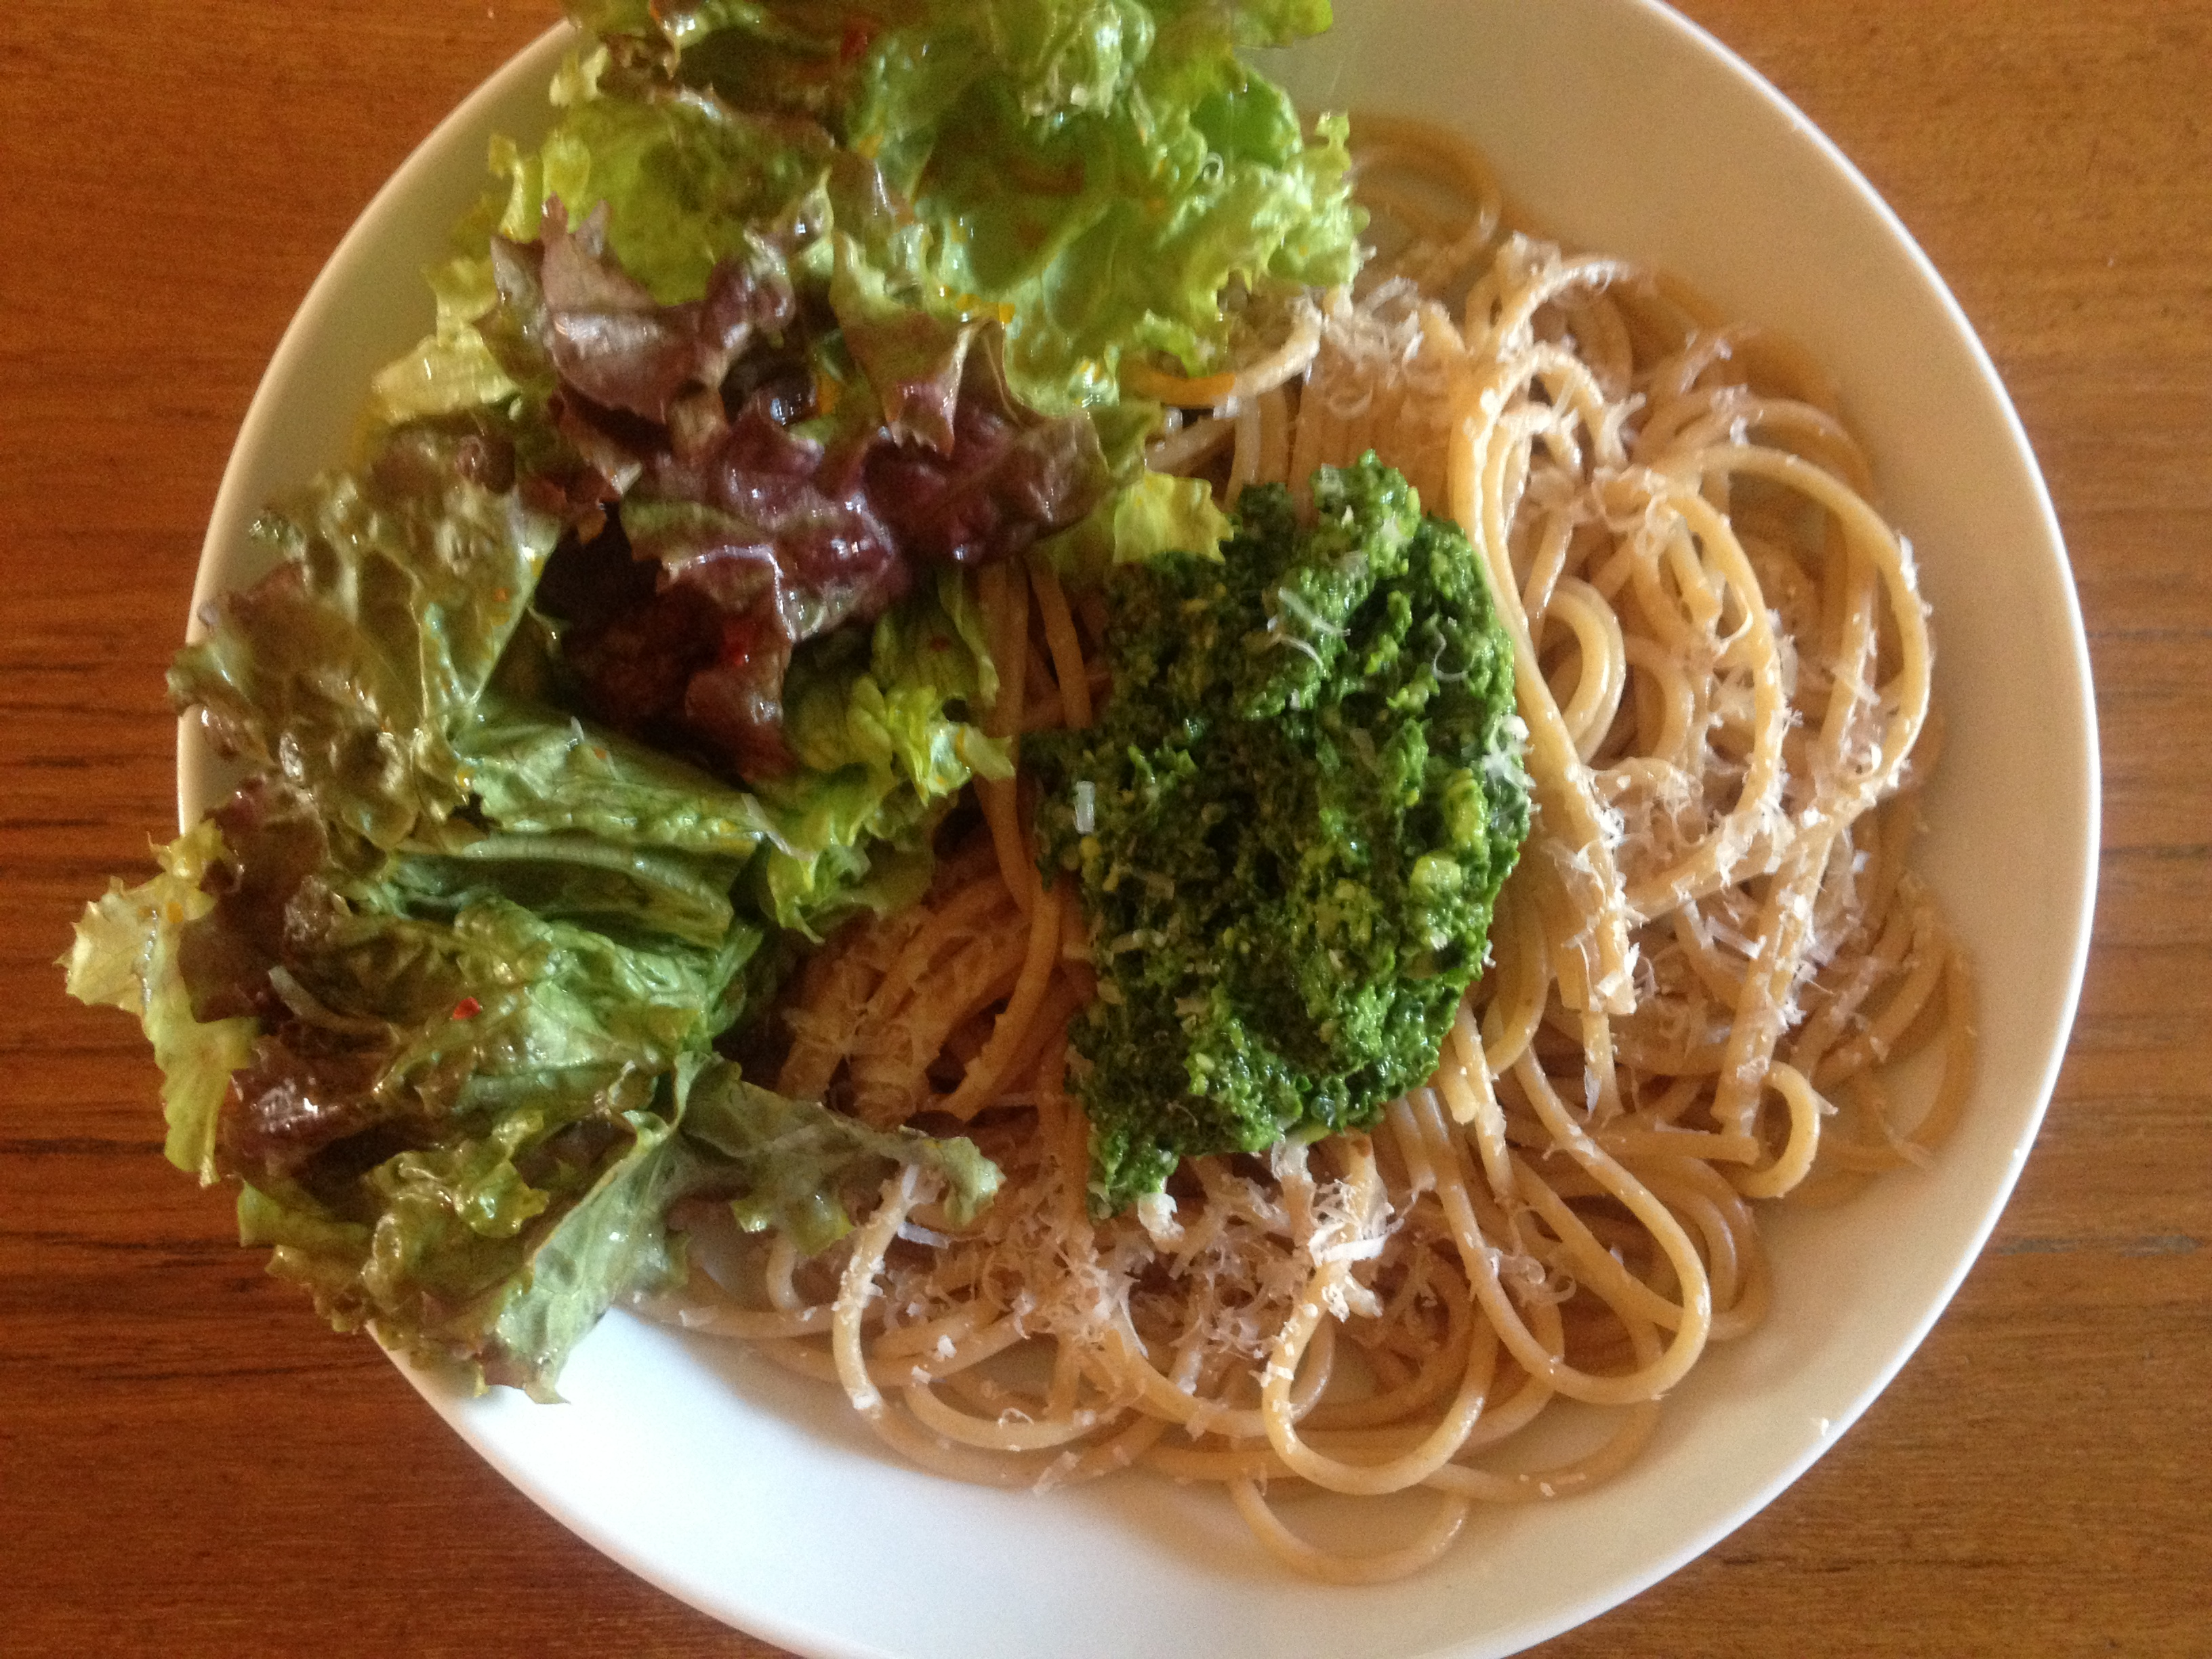 Parsley Pesto, with or without Whole Wheat Pasta | Emmy Cooks